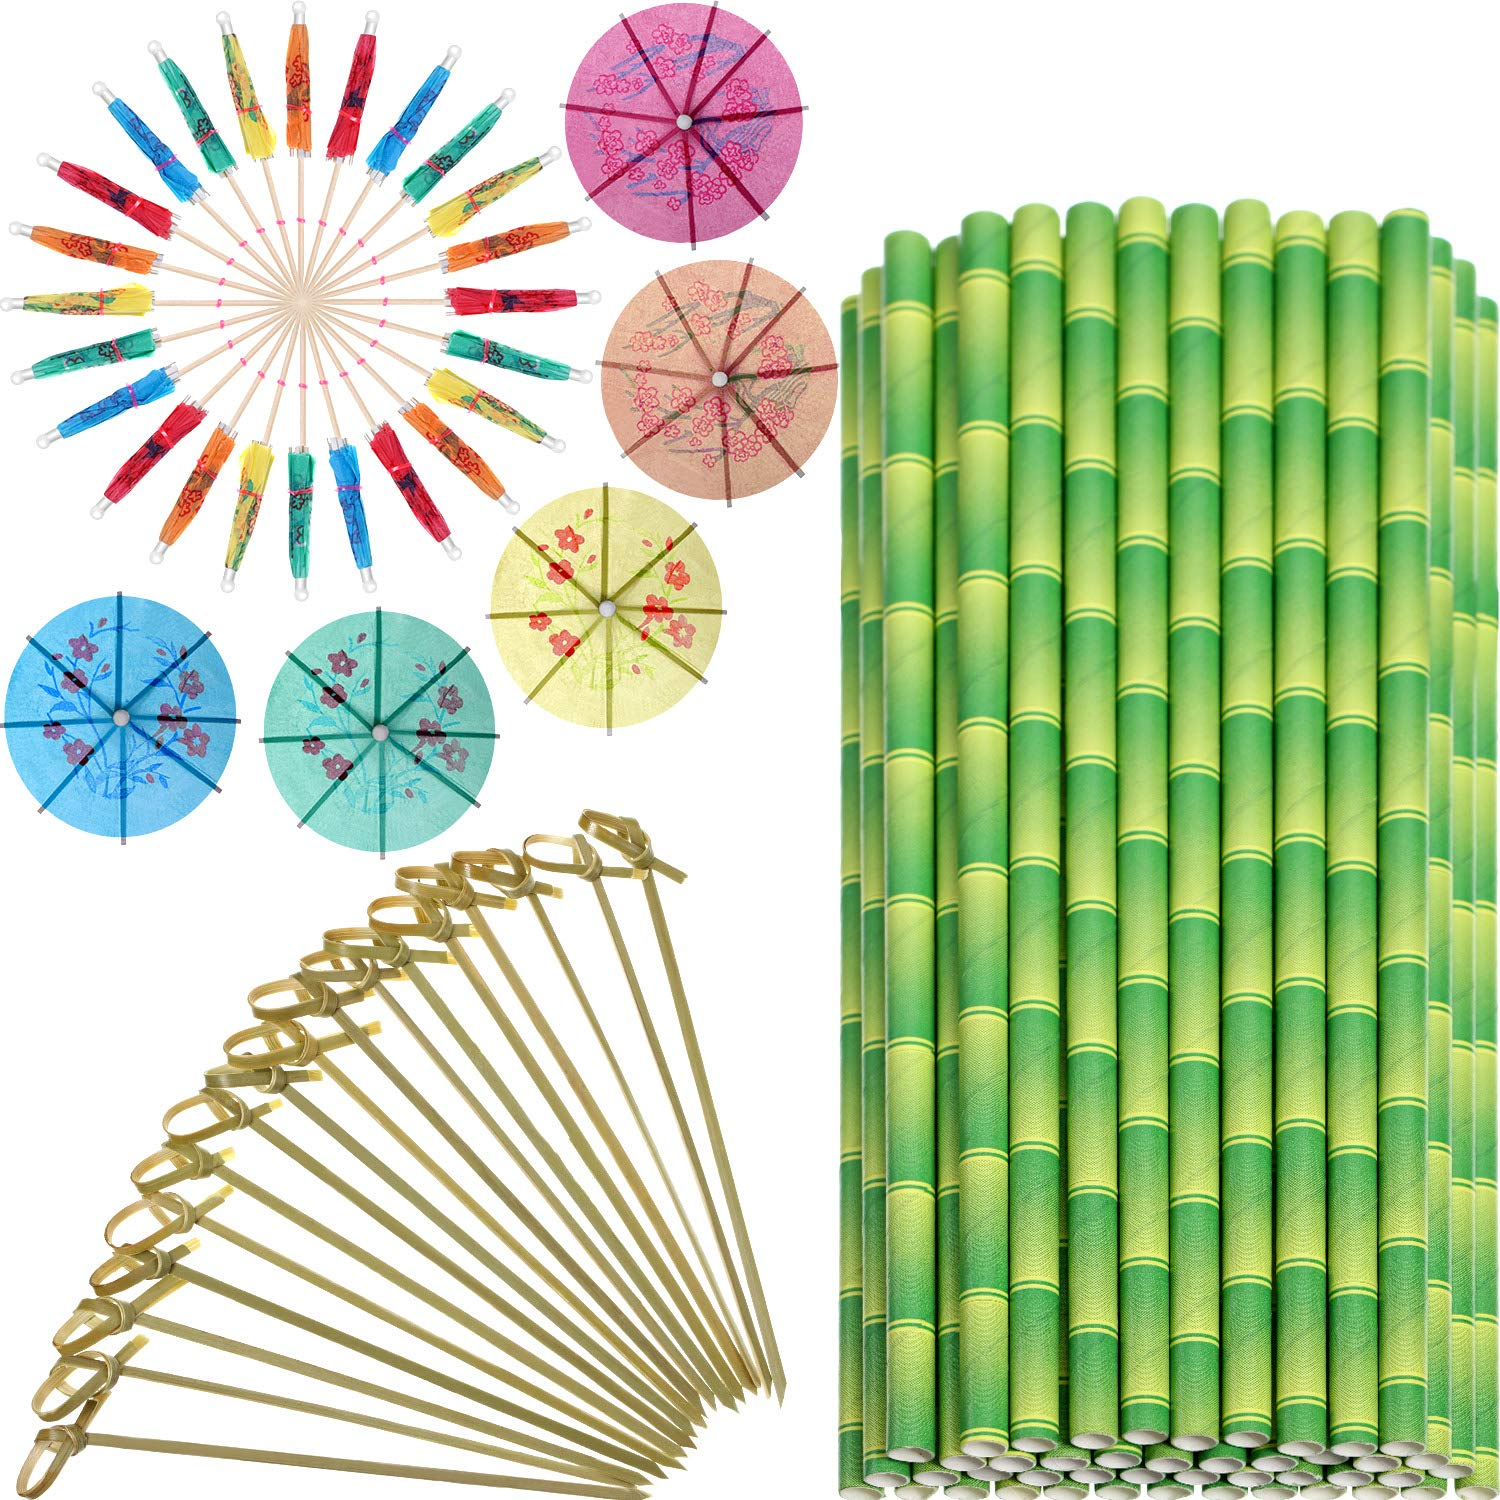 200 Pieces Tropical Hawaiian Party Drink Decorations, Include 50 Pieces Bamboo Print Paper Drinking Straws, 50 Pieces Cocktail Umbrella Picks, 100 Pieces Bamboo Knot Picks Skewers (Color 1)